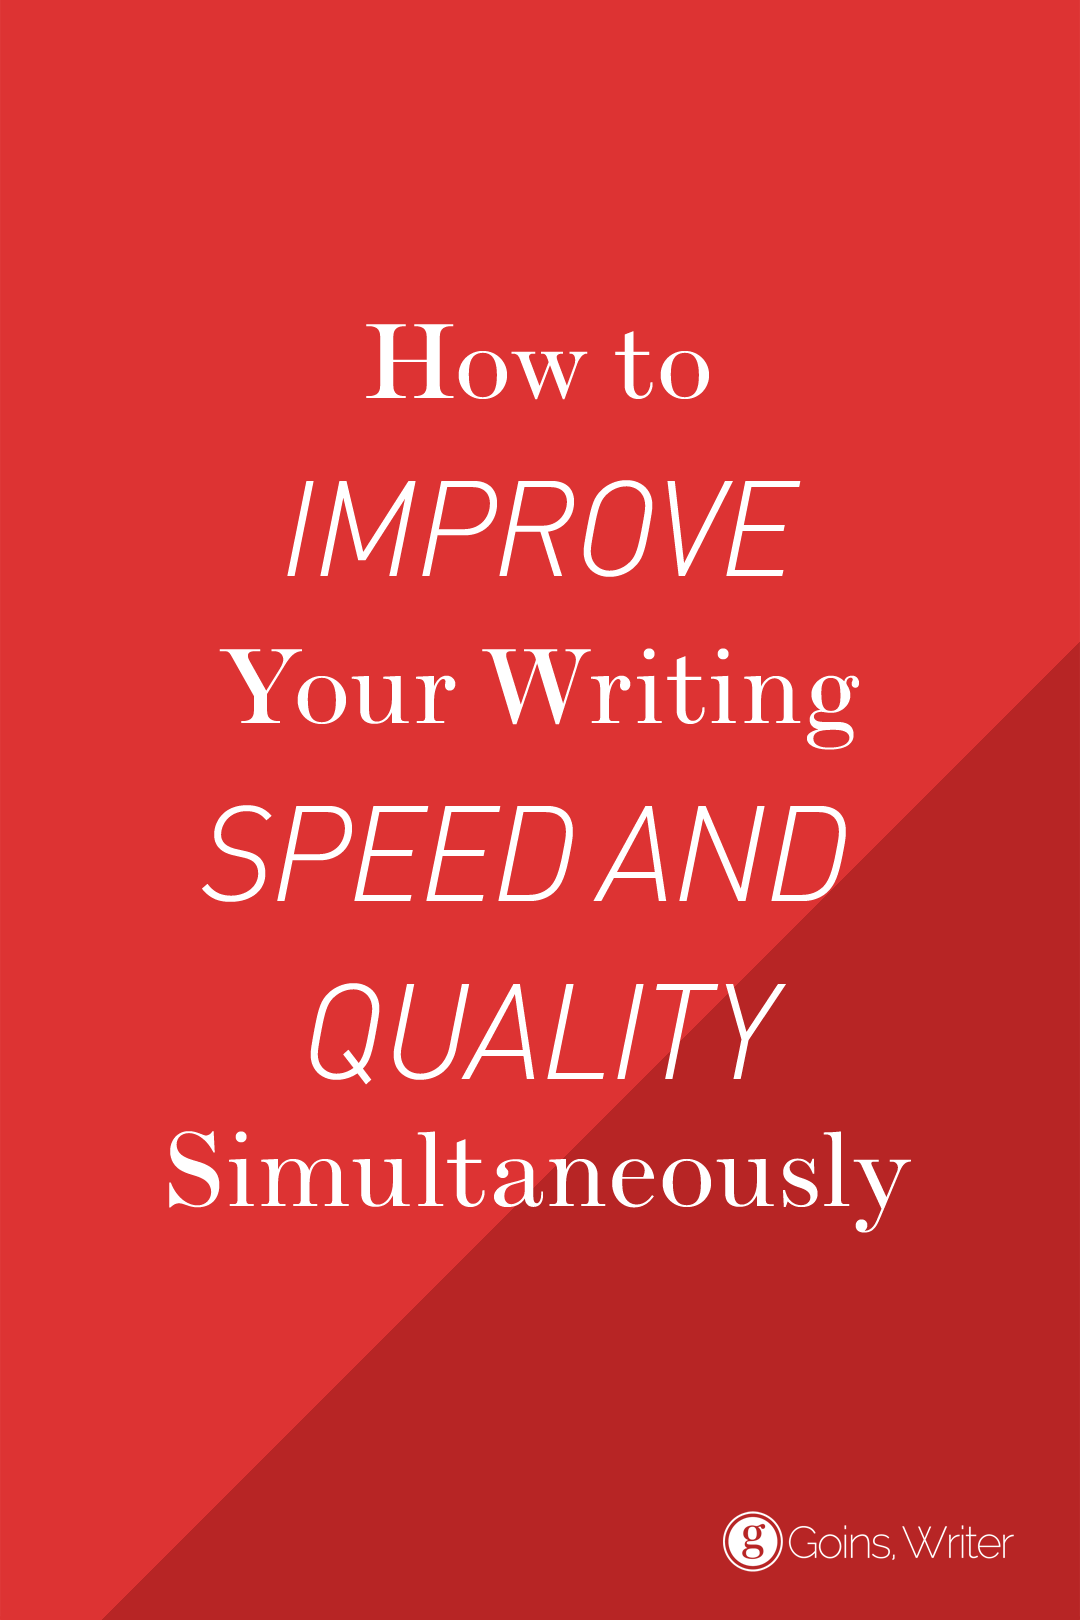 How to Improve Your Writing Speed and Quality